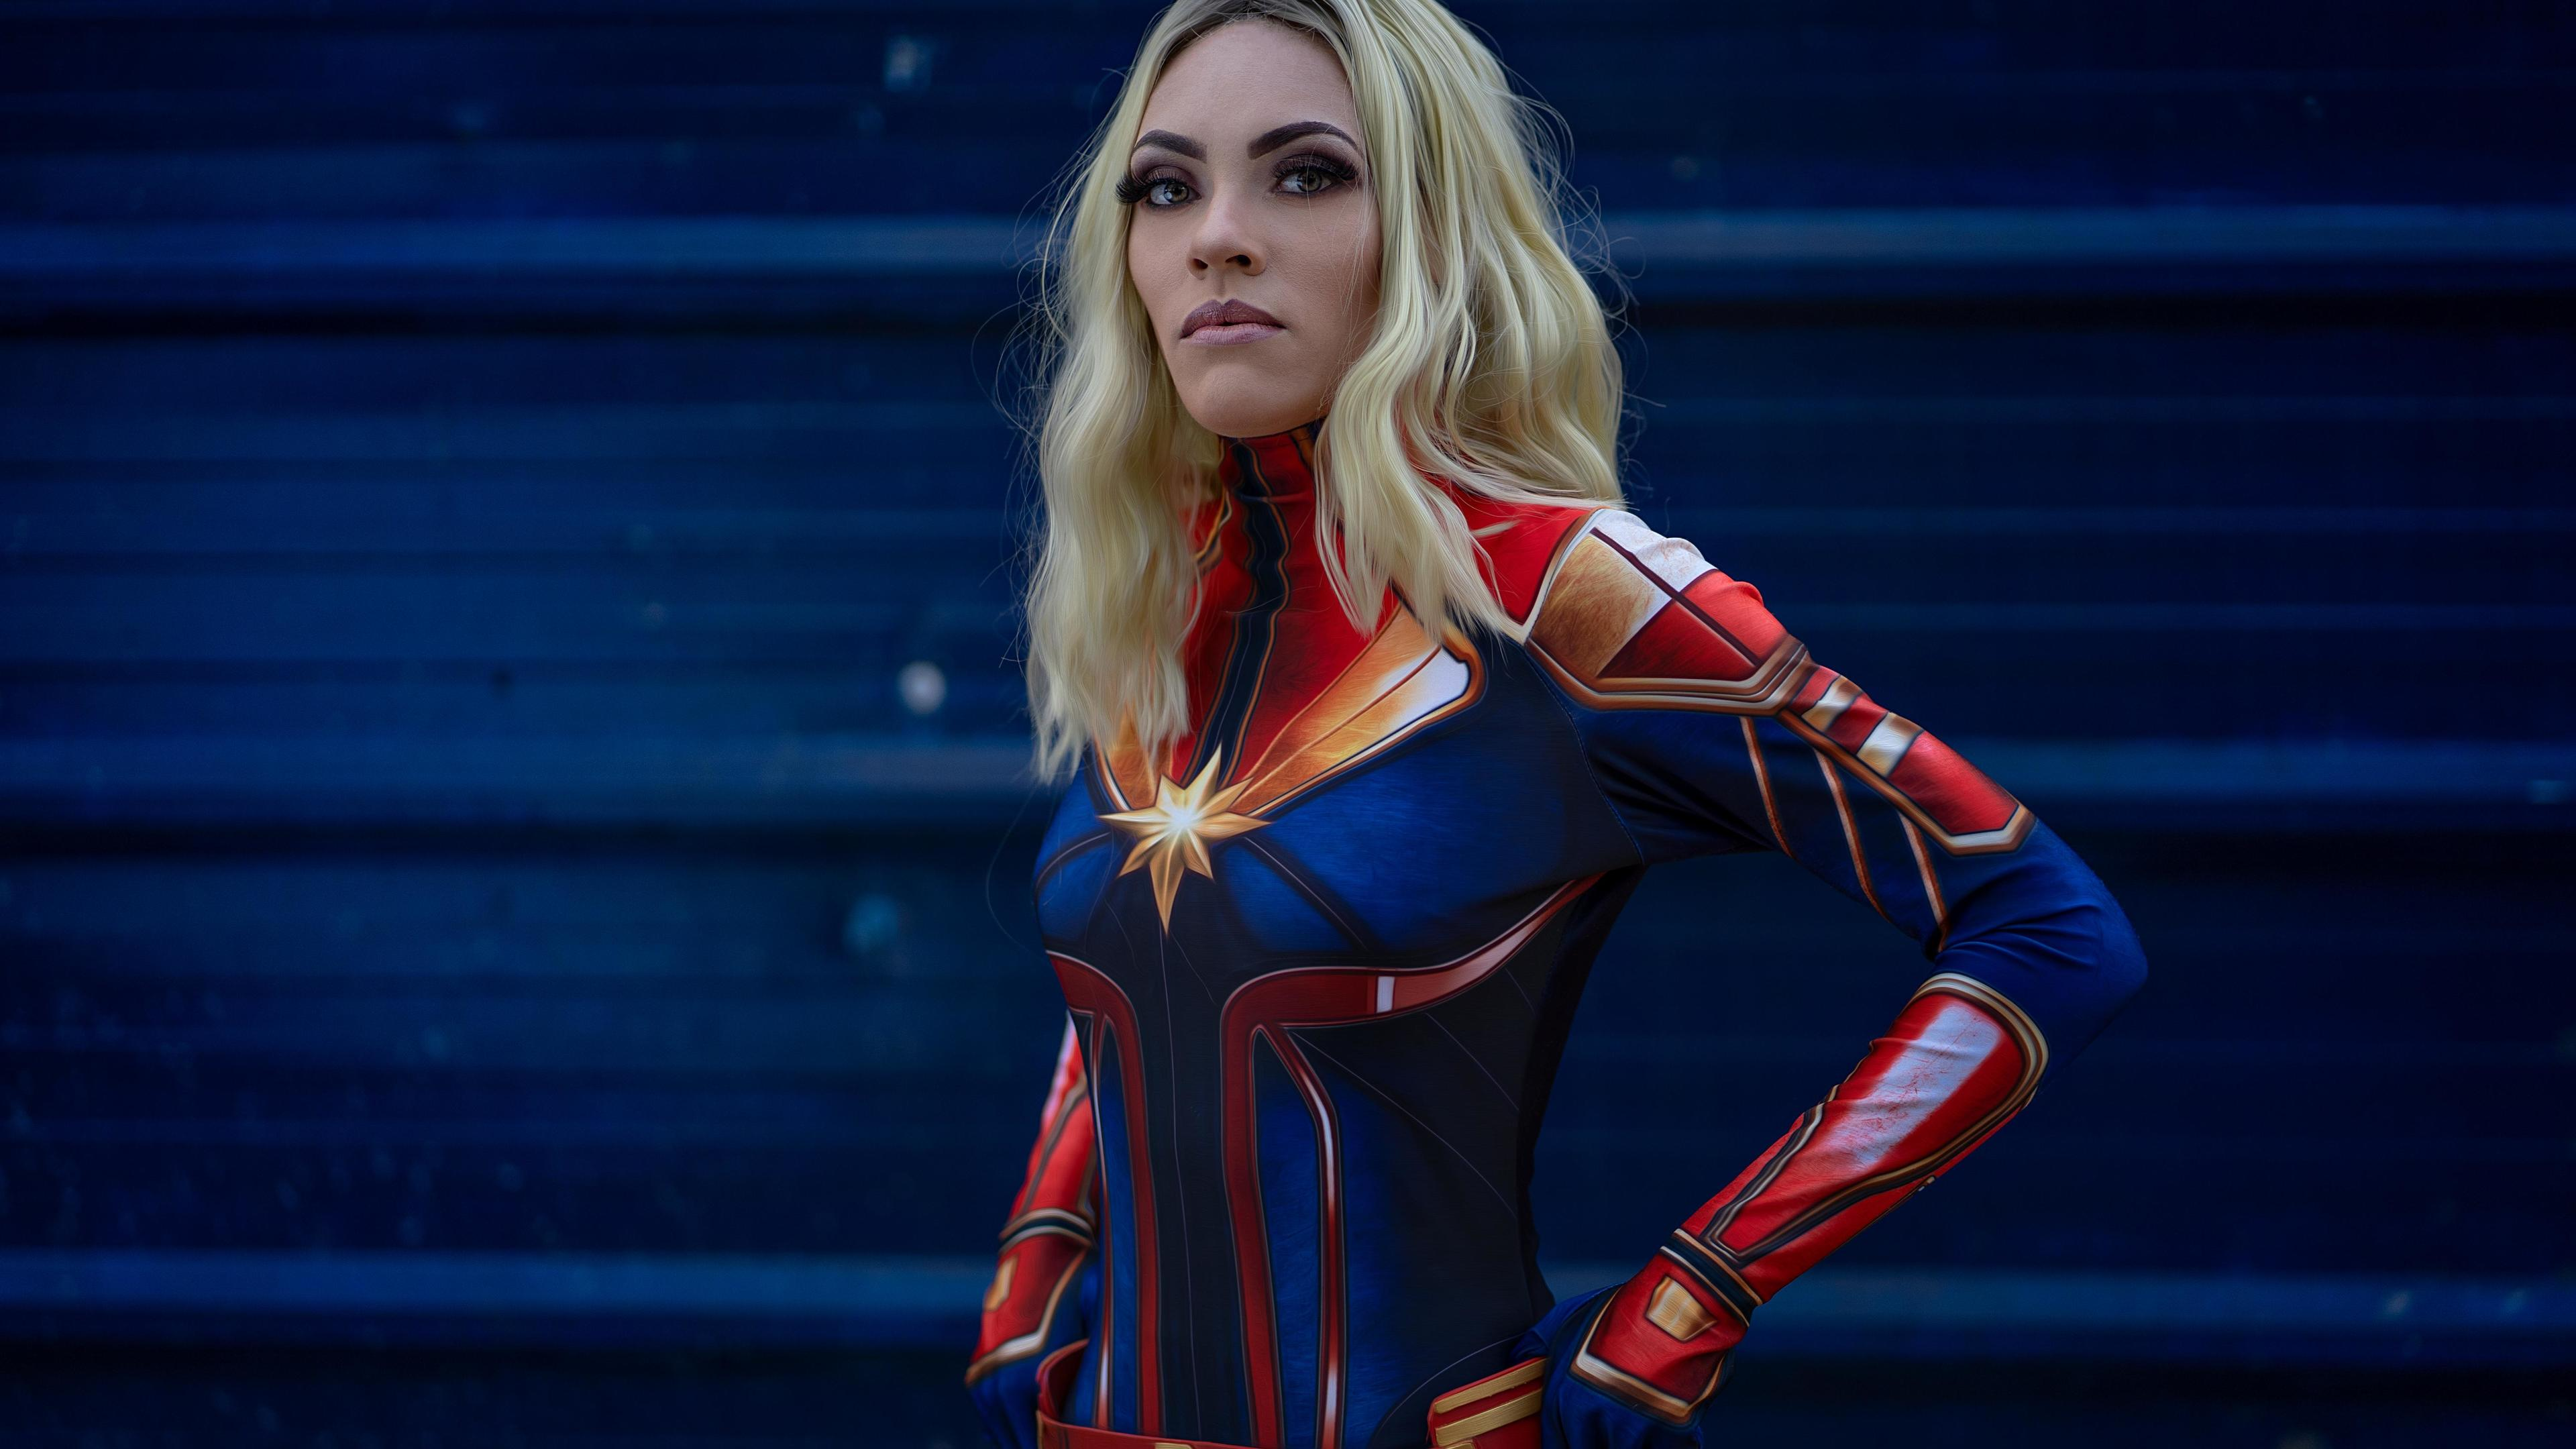 cosplay captain marvel 4k 1557260284 - Cosplay Captain Marvel 4k - superheroes wallpapers, hd-wallpapers, cosplay wallpapers, captain marvel wallpapers, 5k wallpapers, 4k-wallpapers